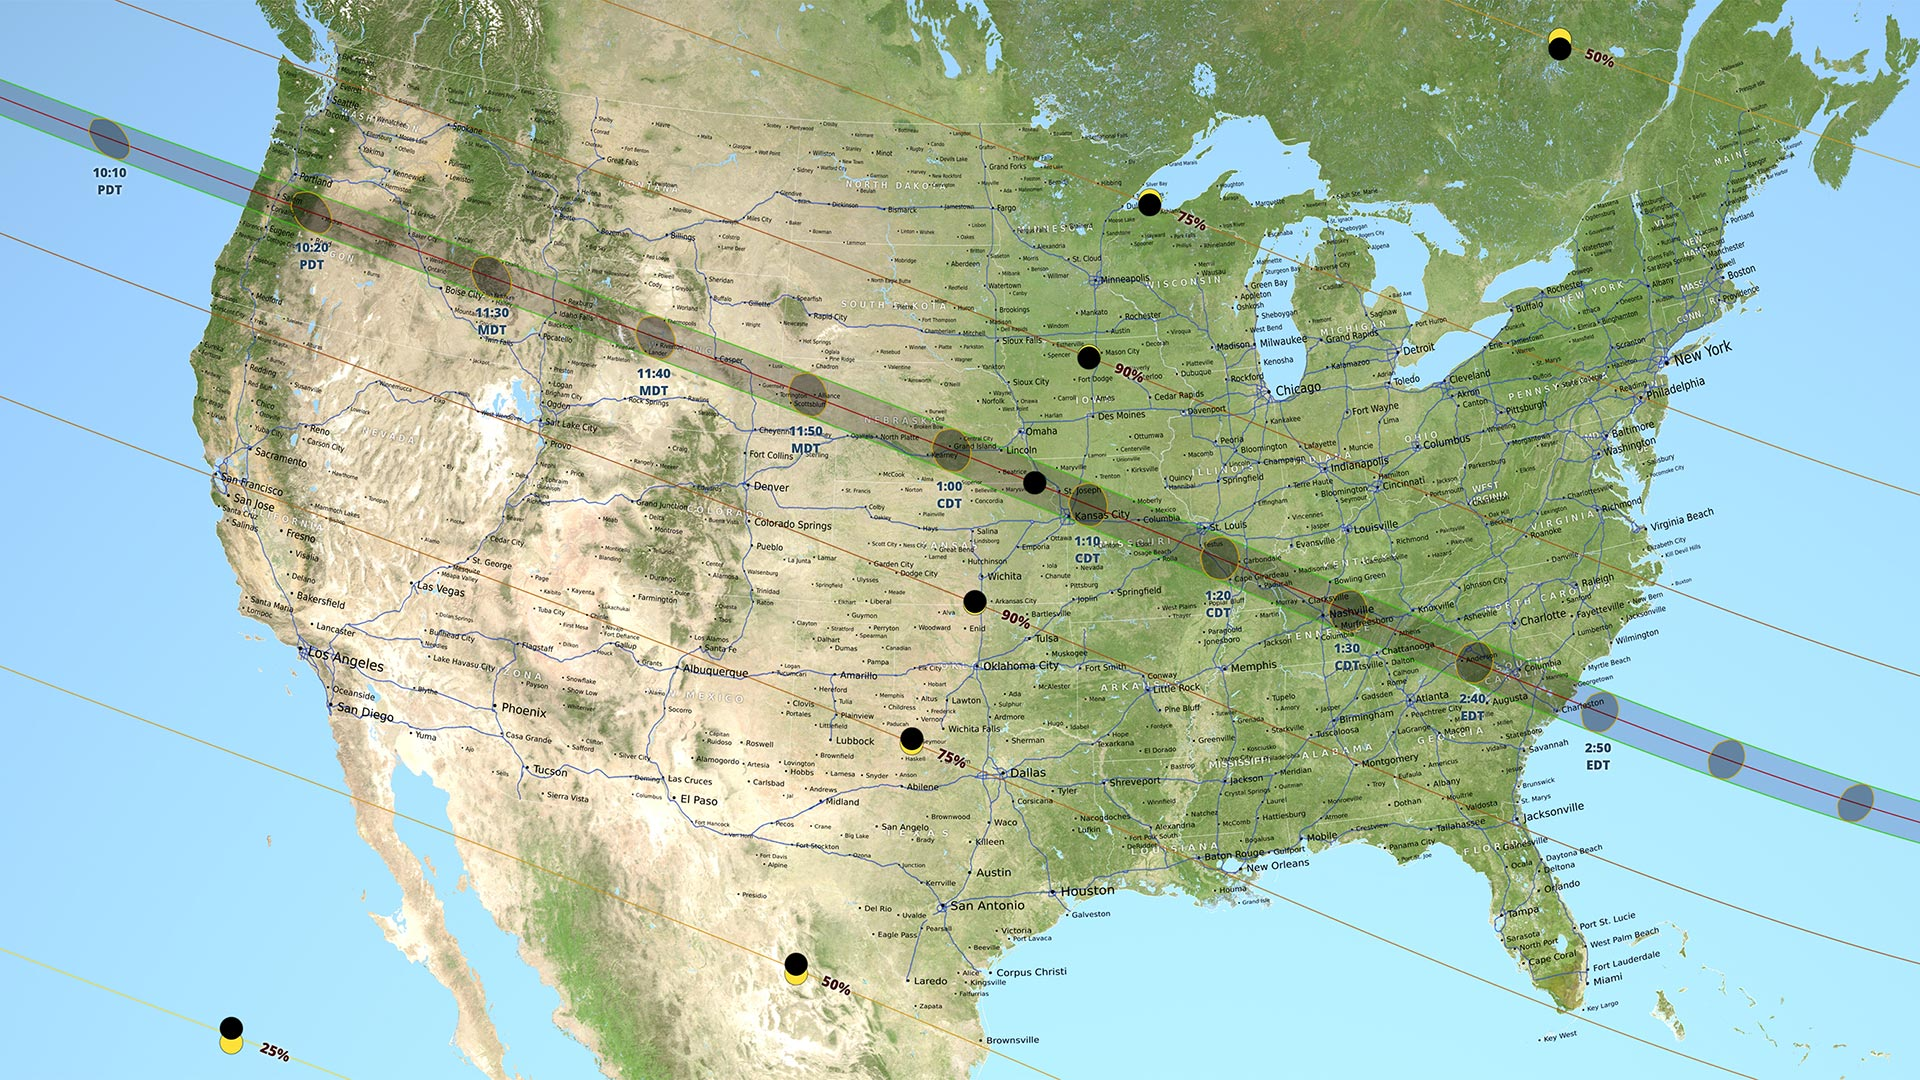 A map of the path of the total solar eclipse occurring Aug. 21, 2017.